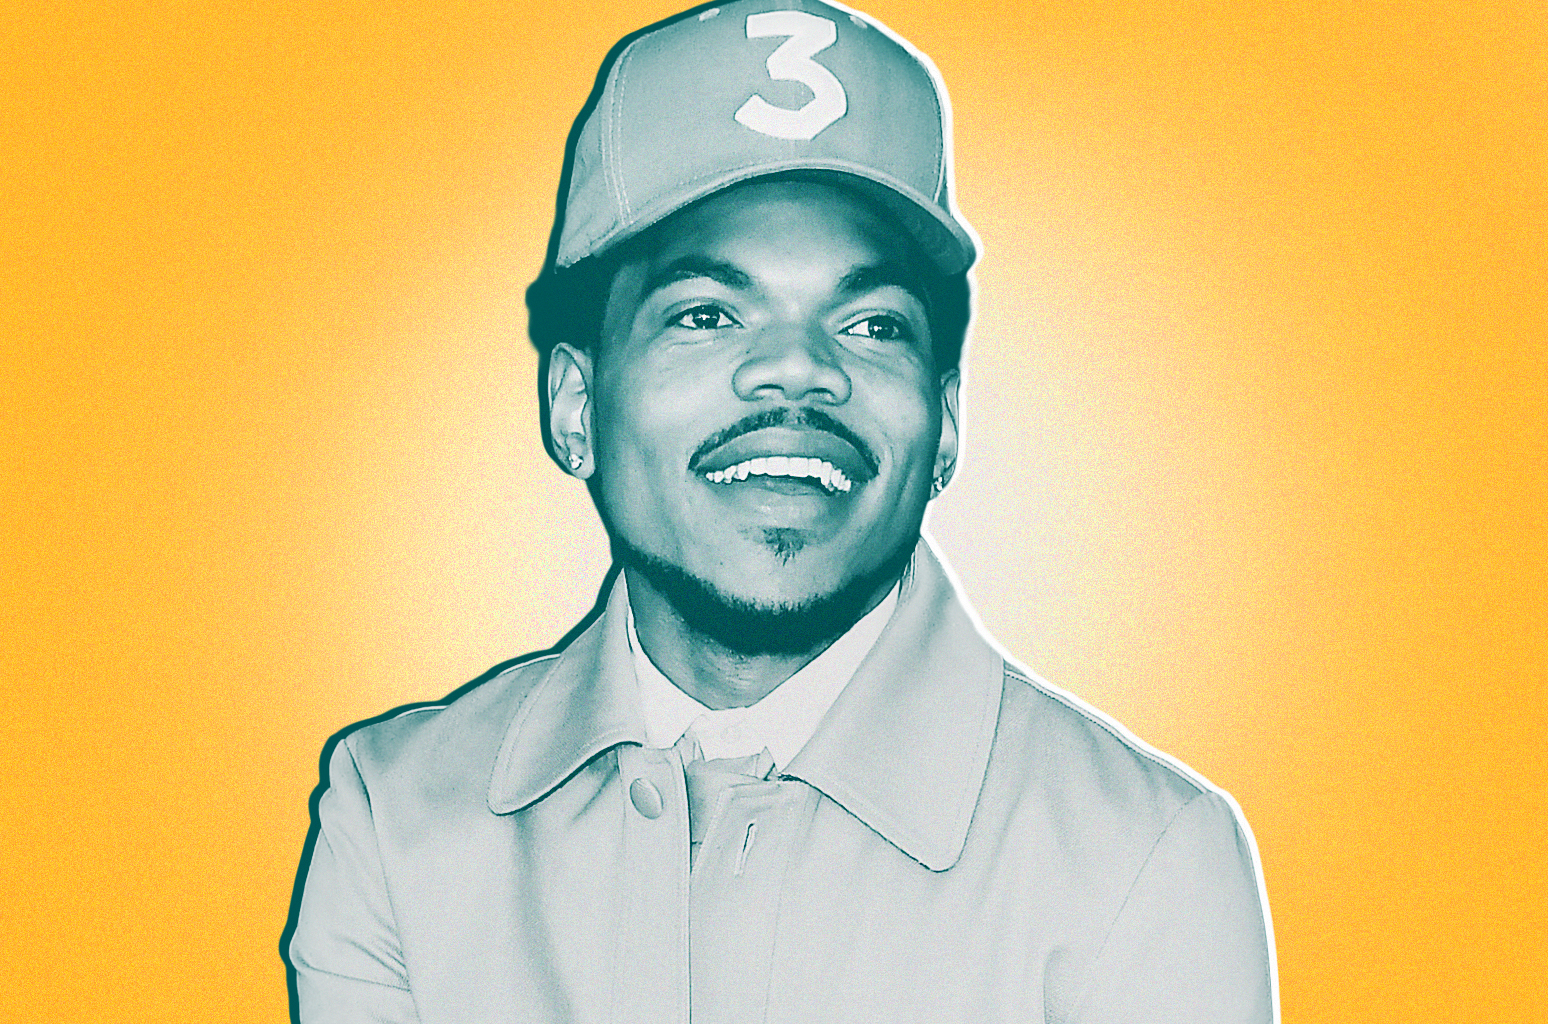 Hire Chance The Rapper